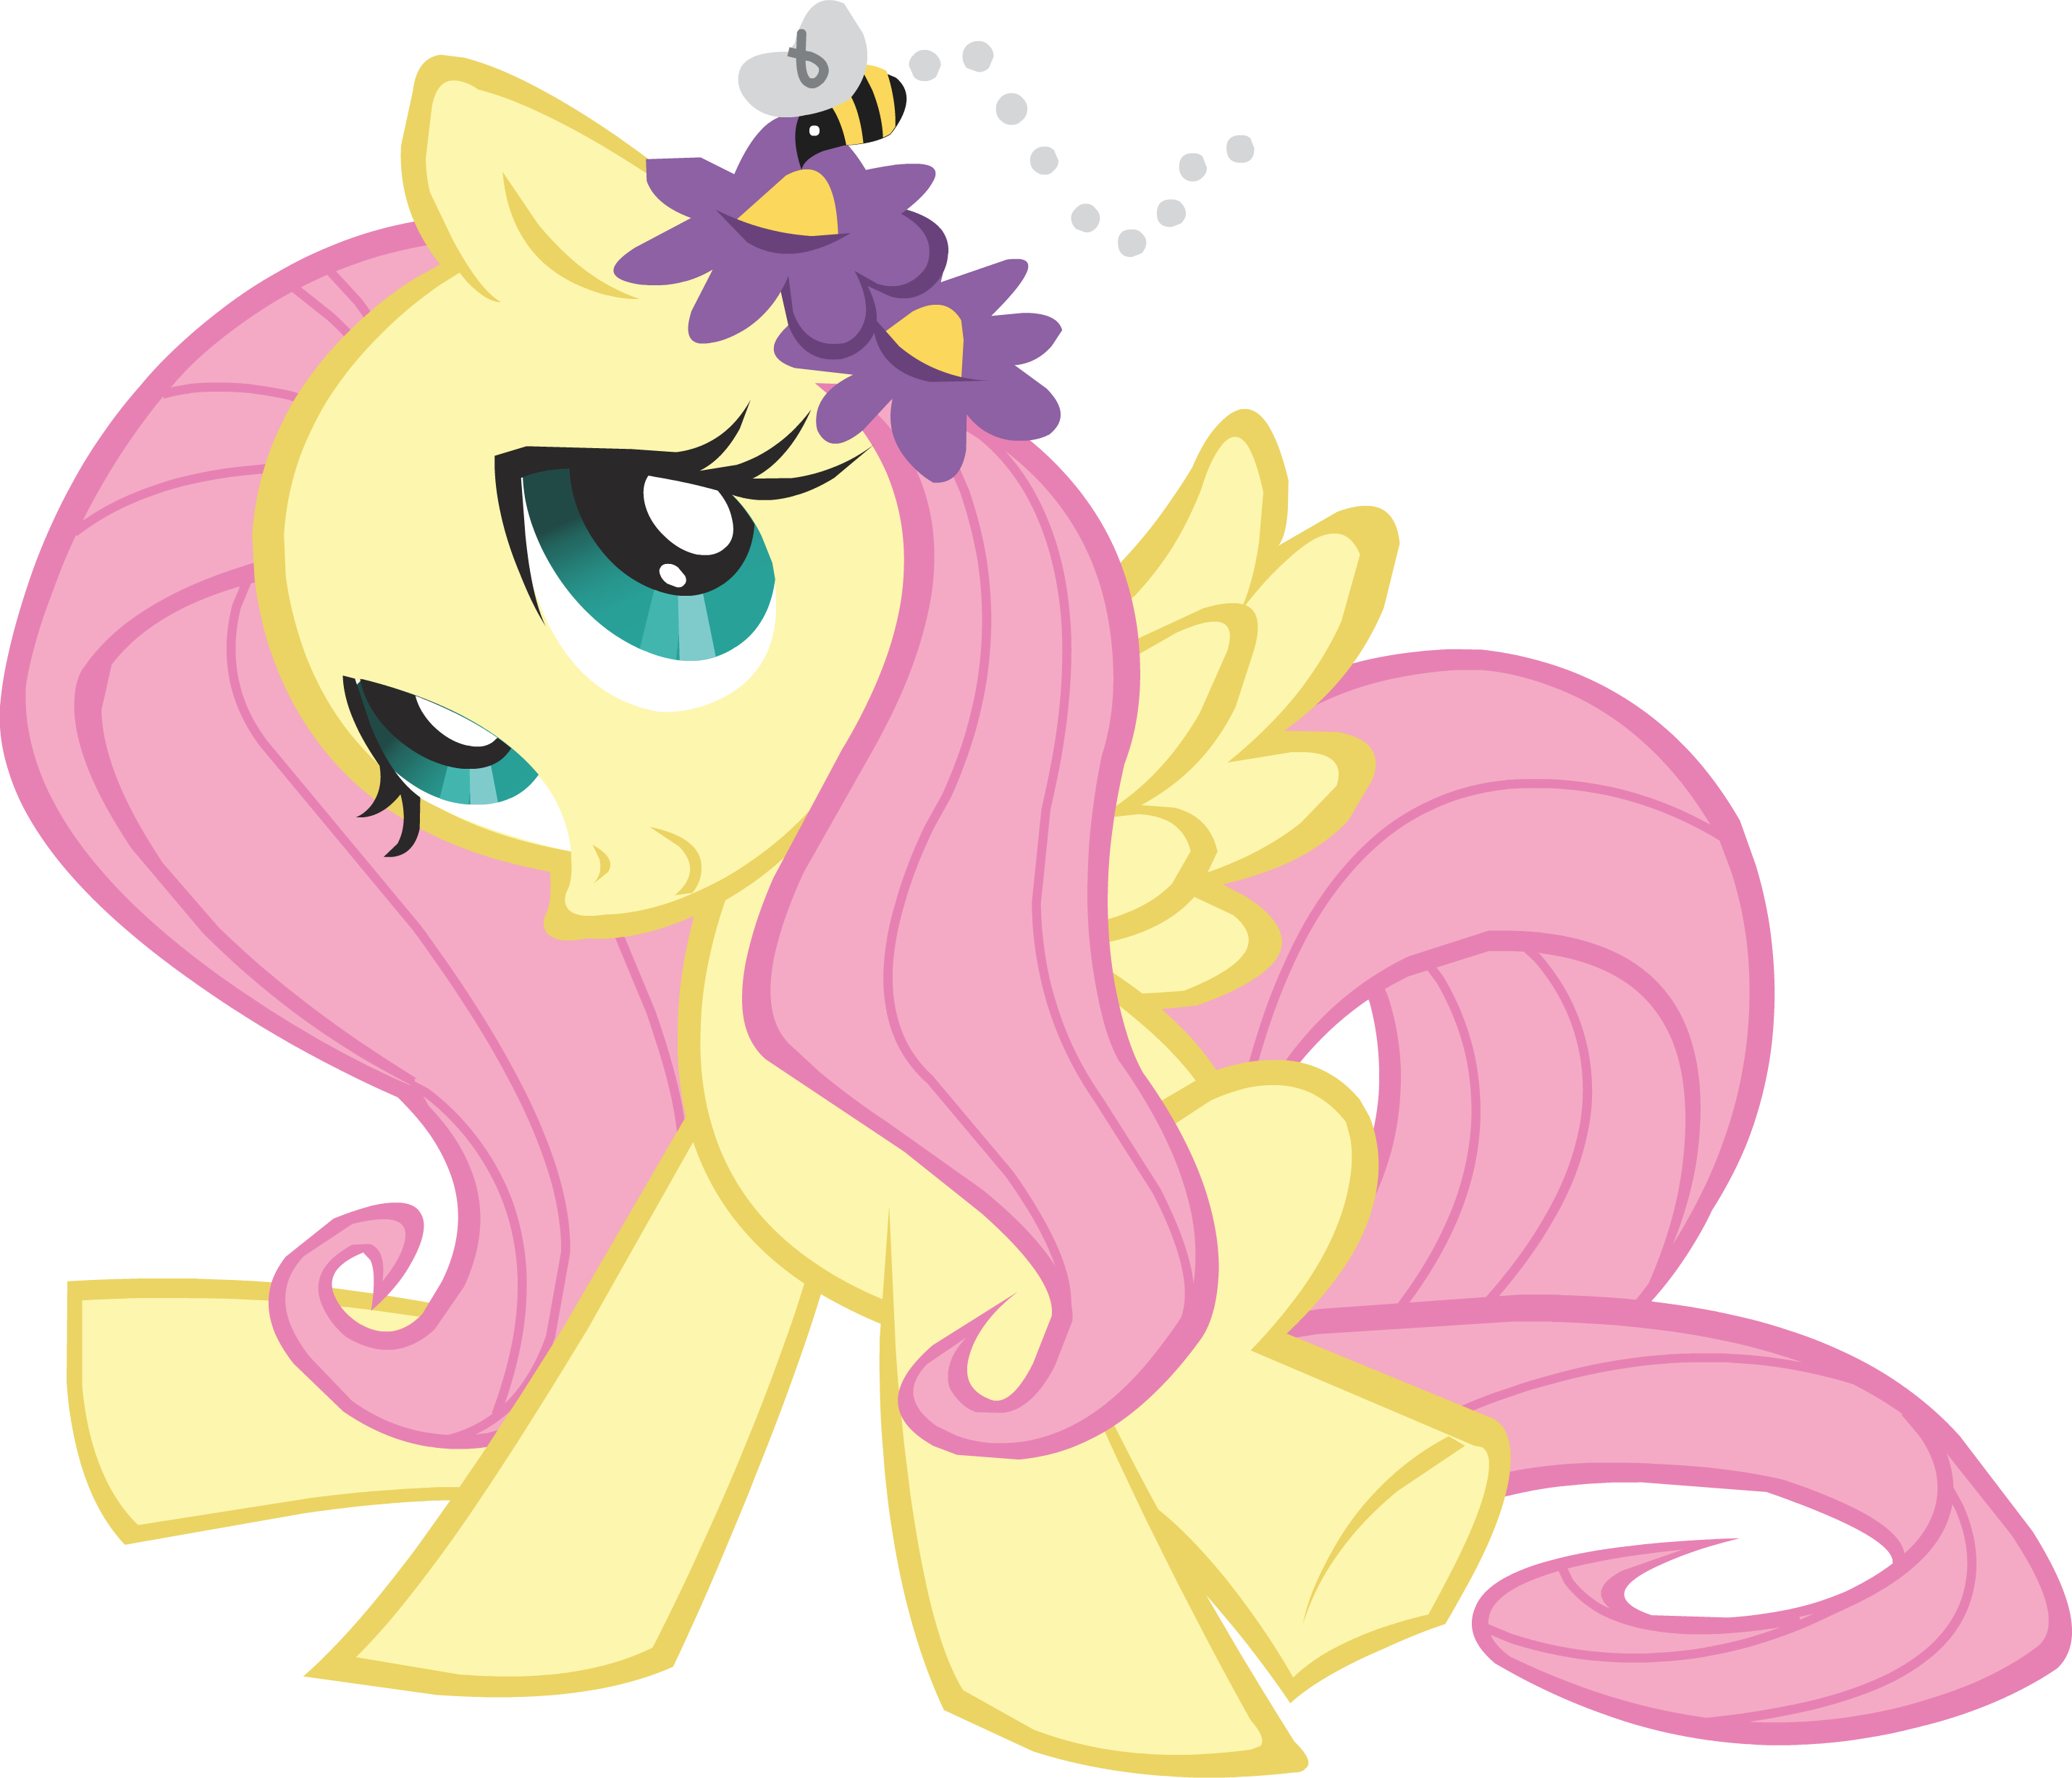 little pony png transparent little pony images #28025